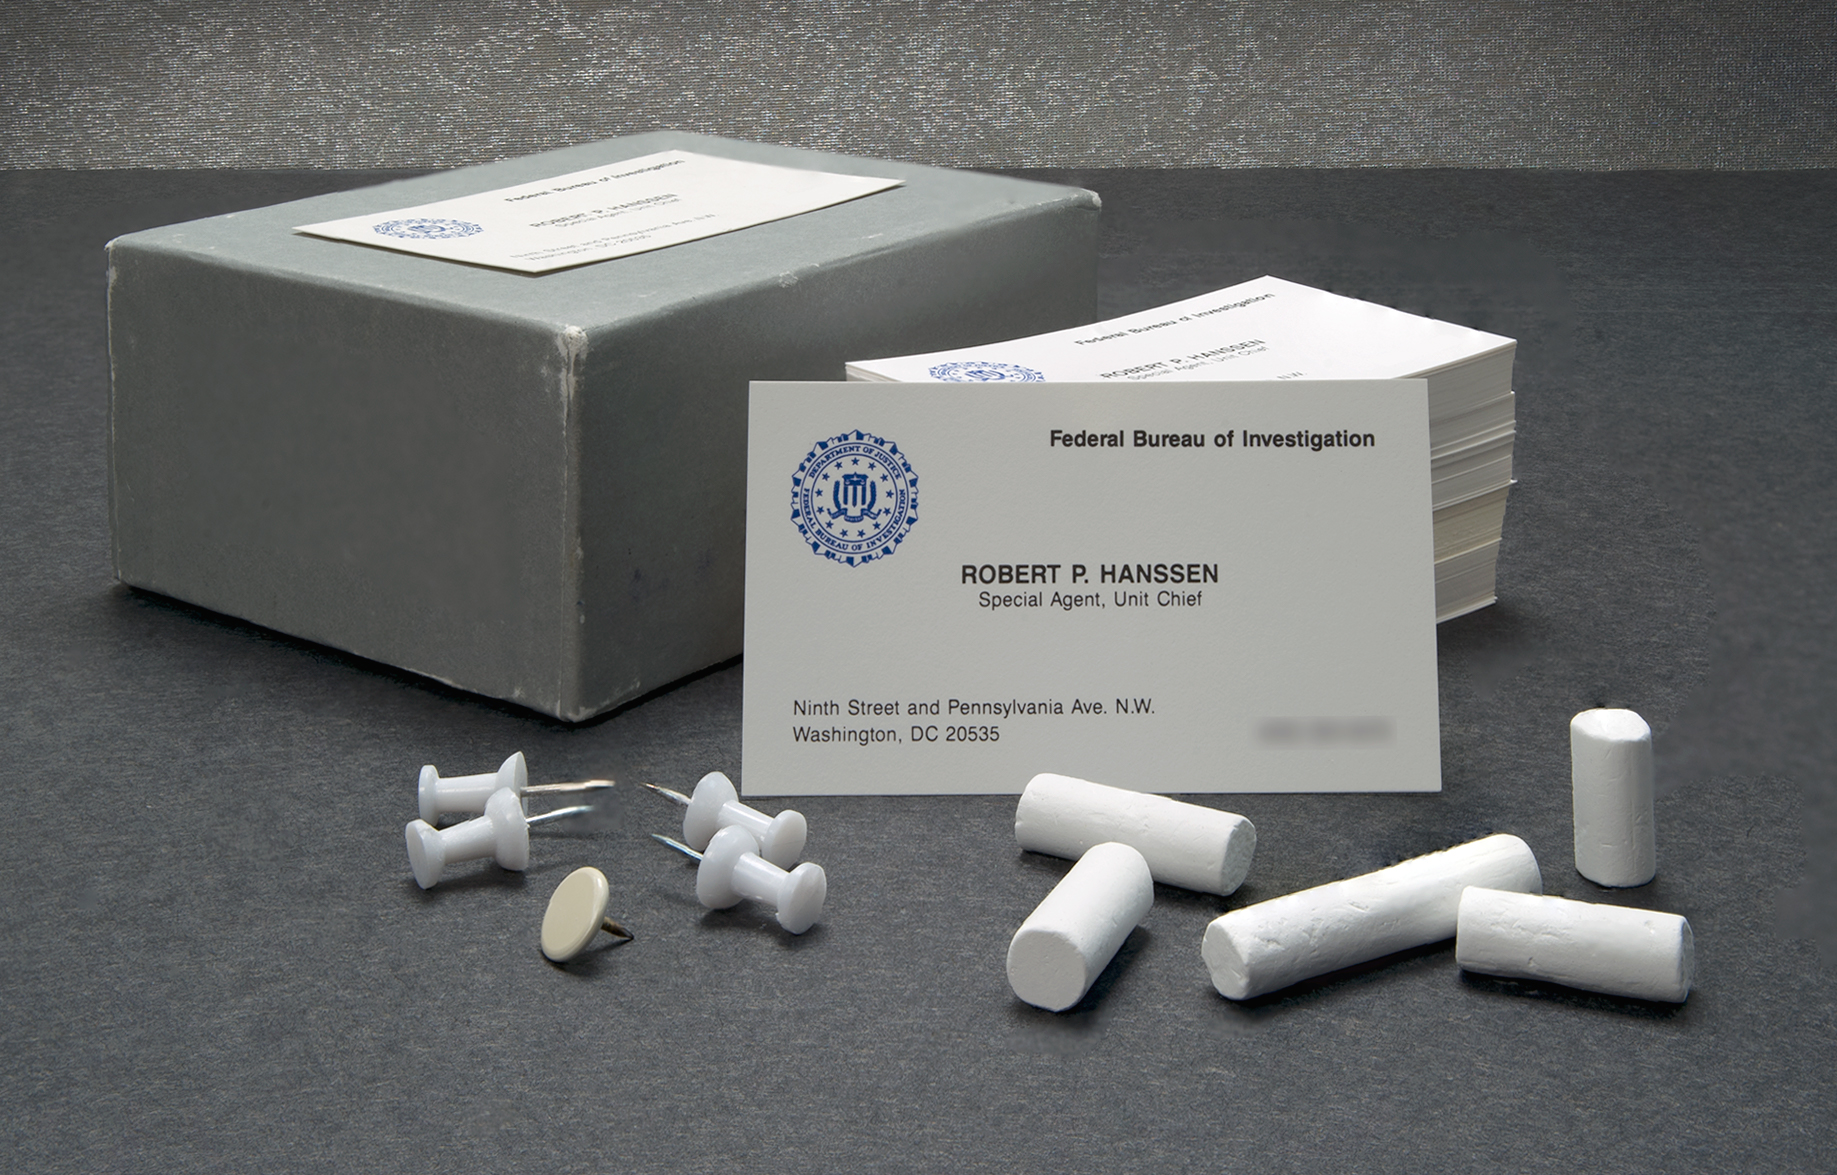 Hanssens business cards fbi magicingreecefo Image collections